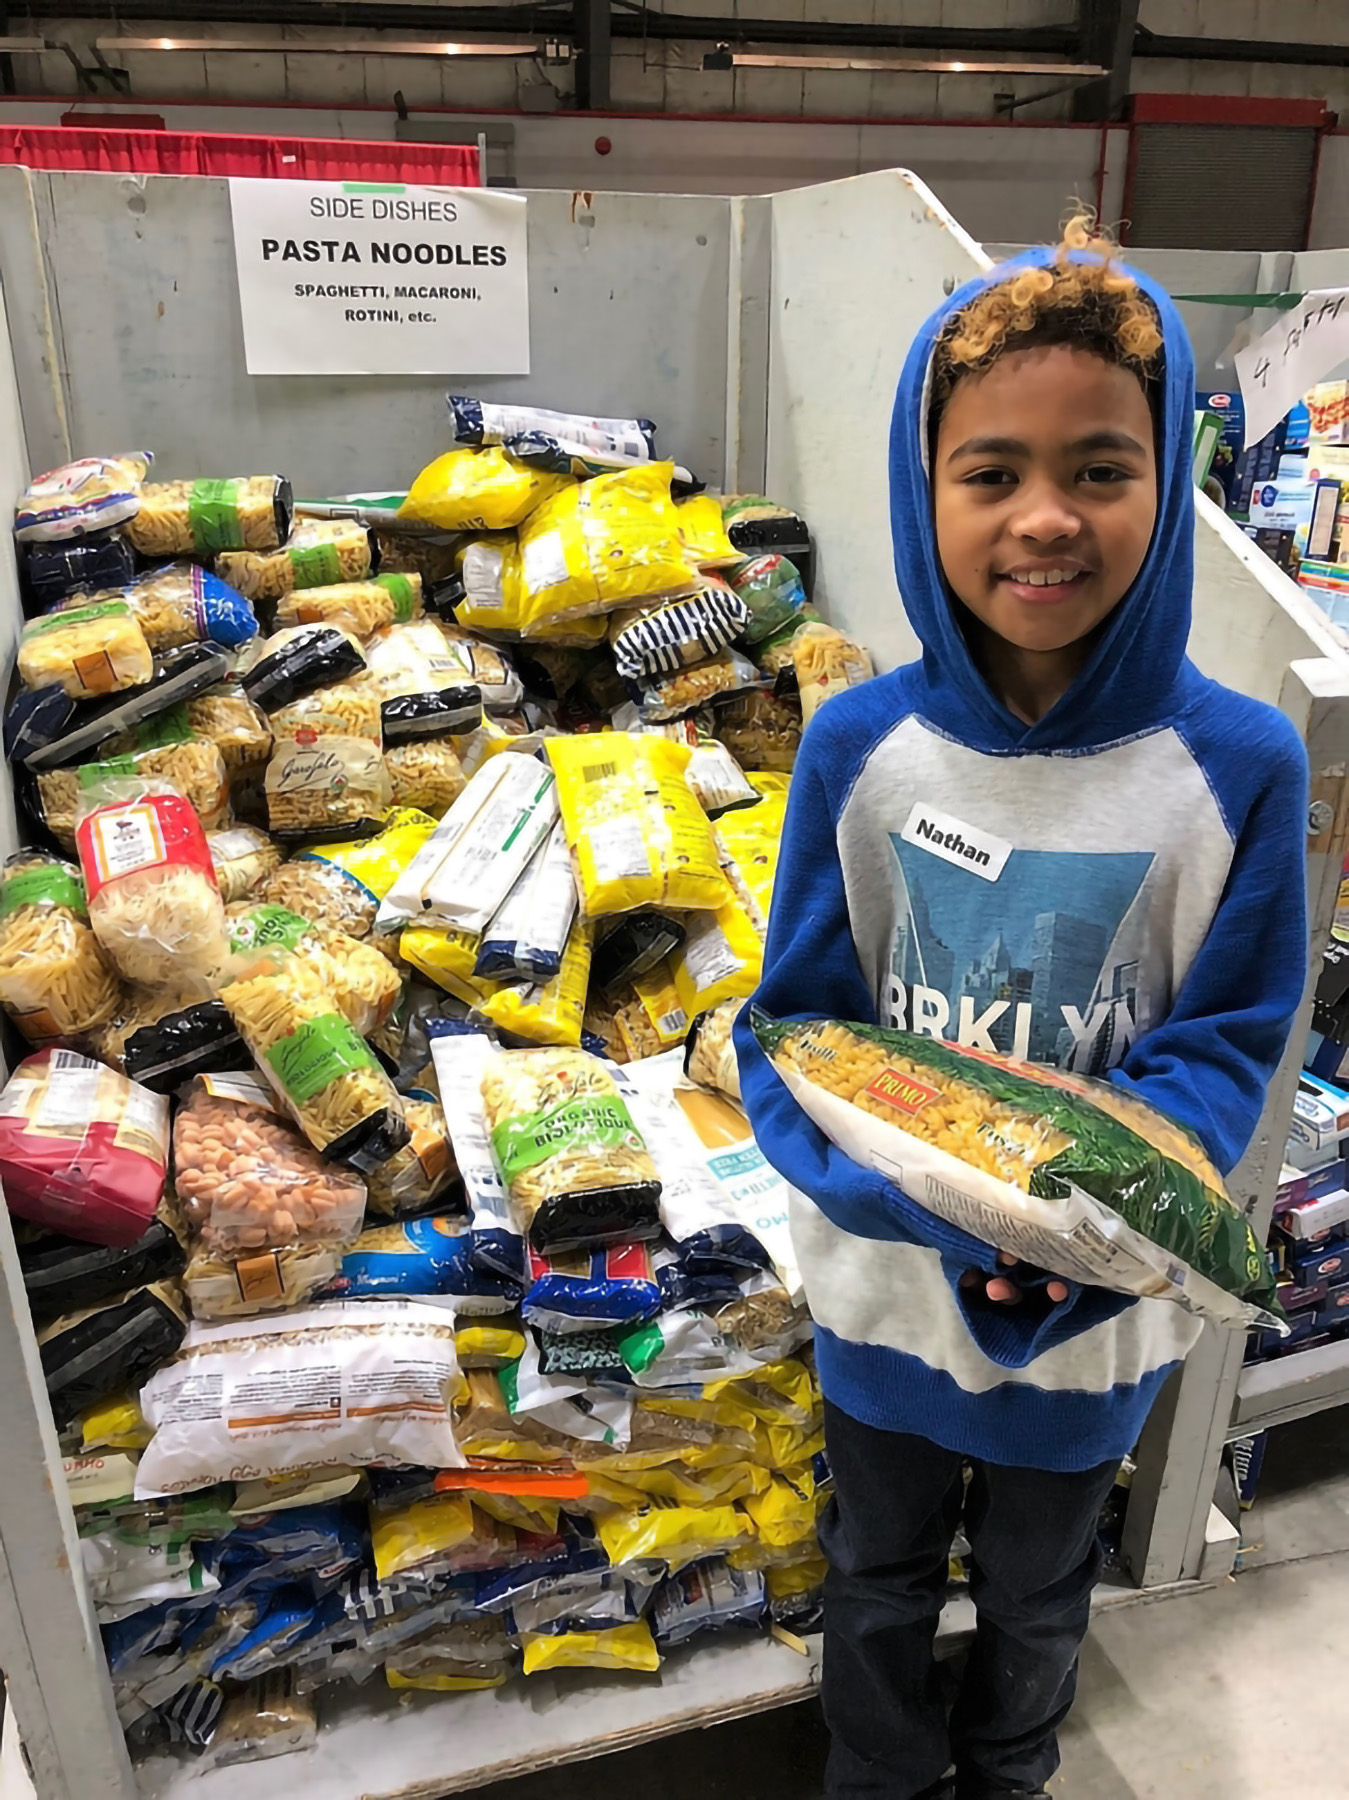 Student in front of food hamper